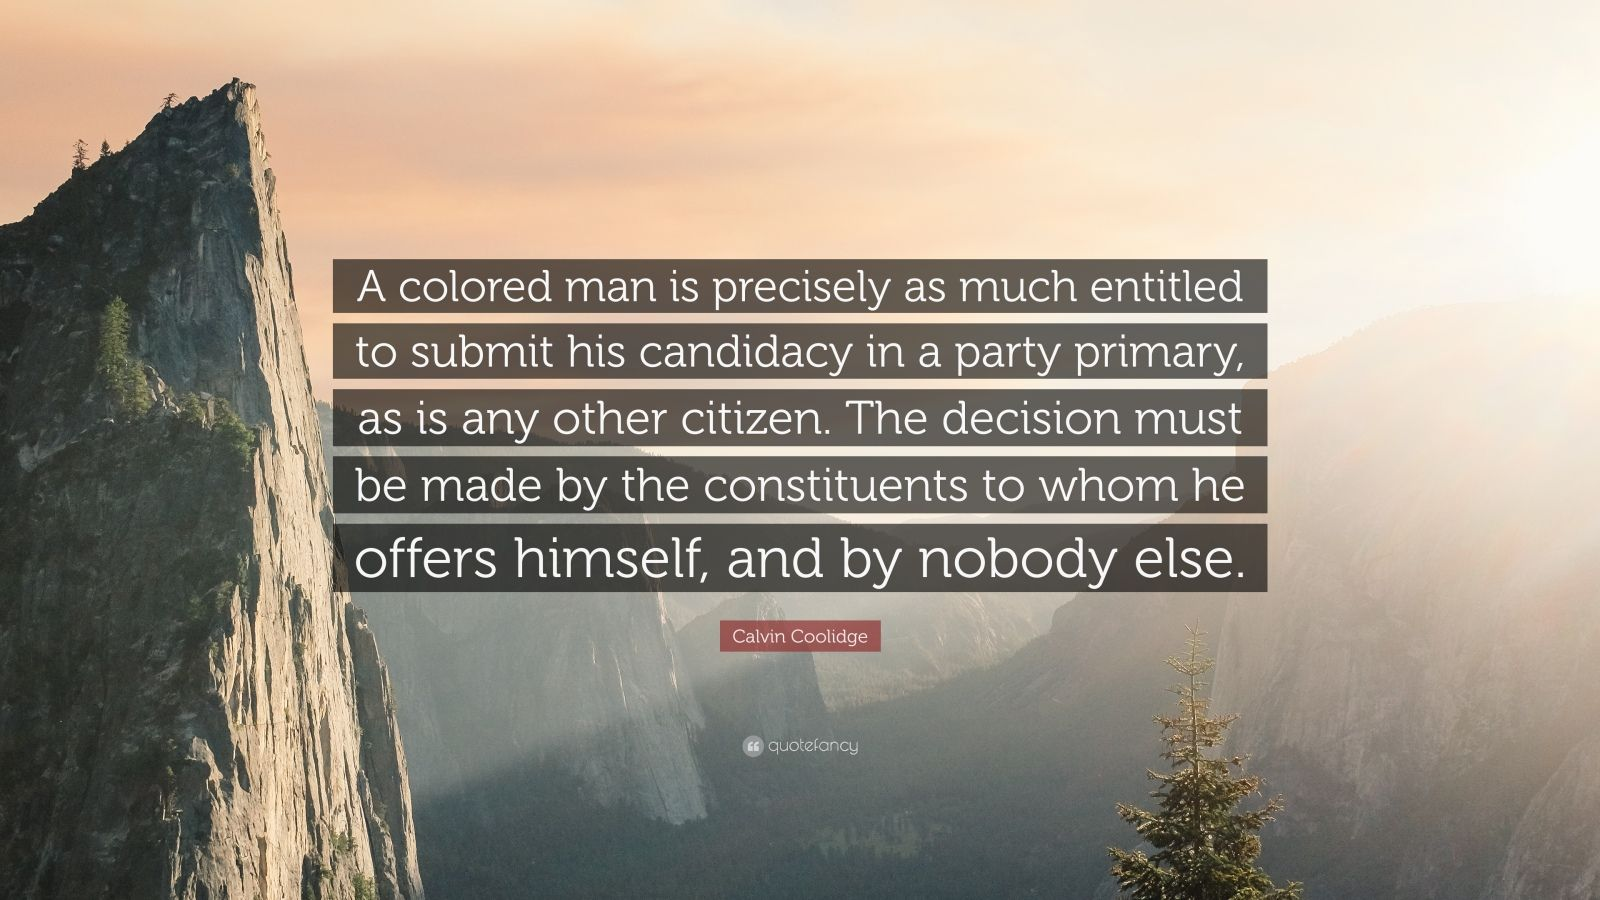 """Calvin Coolidge Quote: """"A colored man is precisely as much entitled to submit his candidacy in a party primary, as is any other citizen. The decision must be made by the constituents to whom he offers himself, and by nobody else."""""""